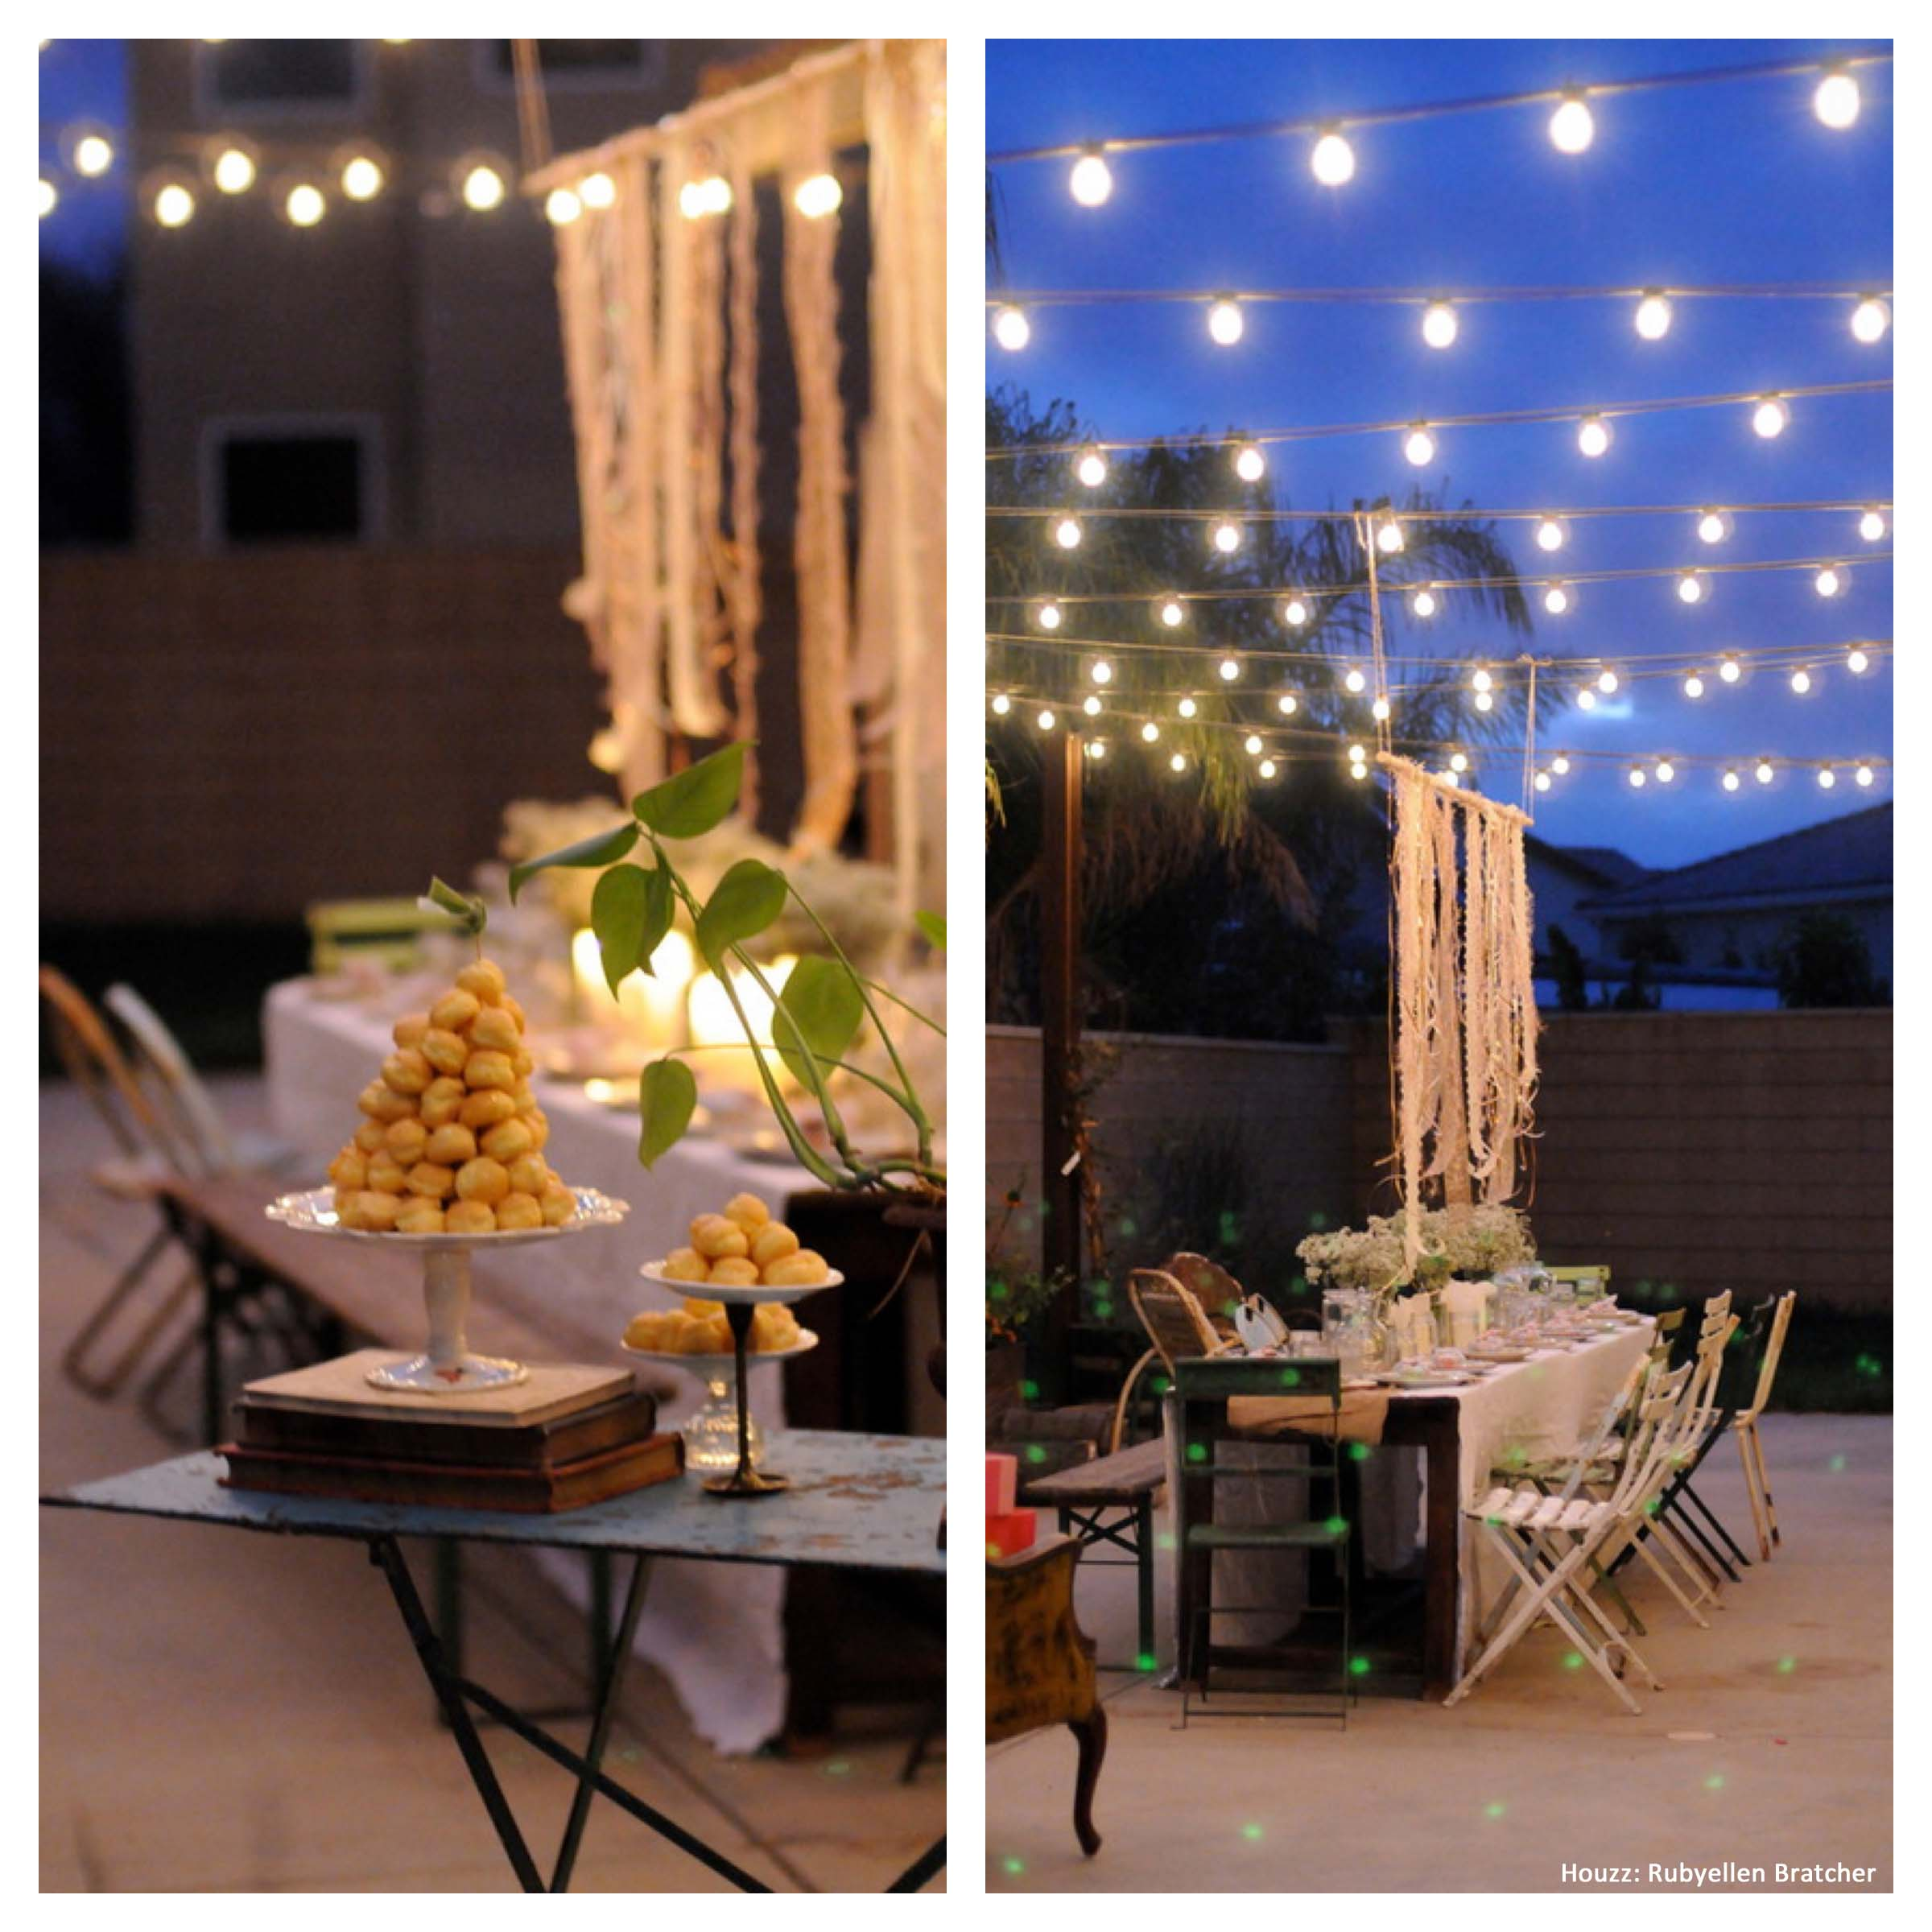 Ideas For Backyard Parties: Outdoor Living Spaces - Homes By